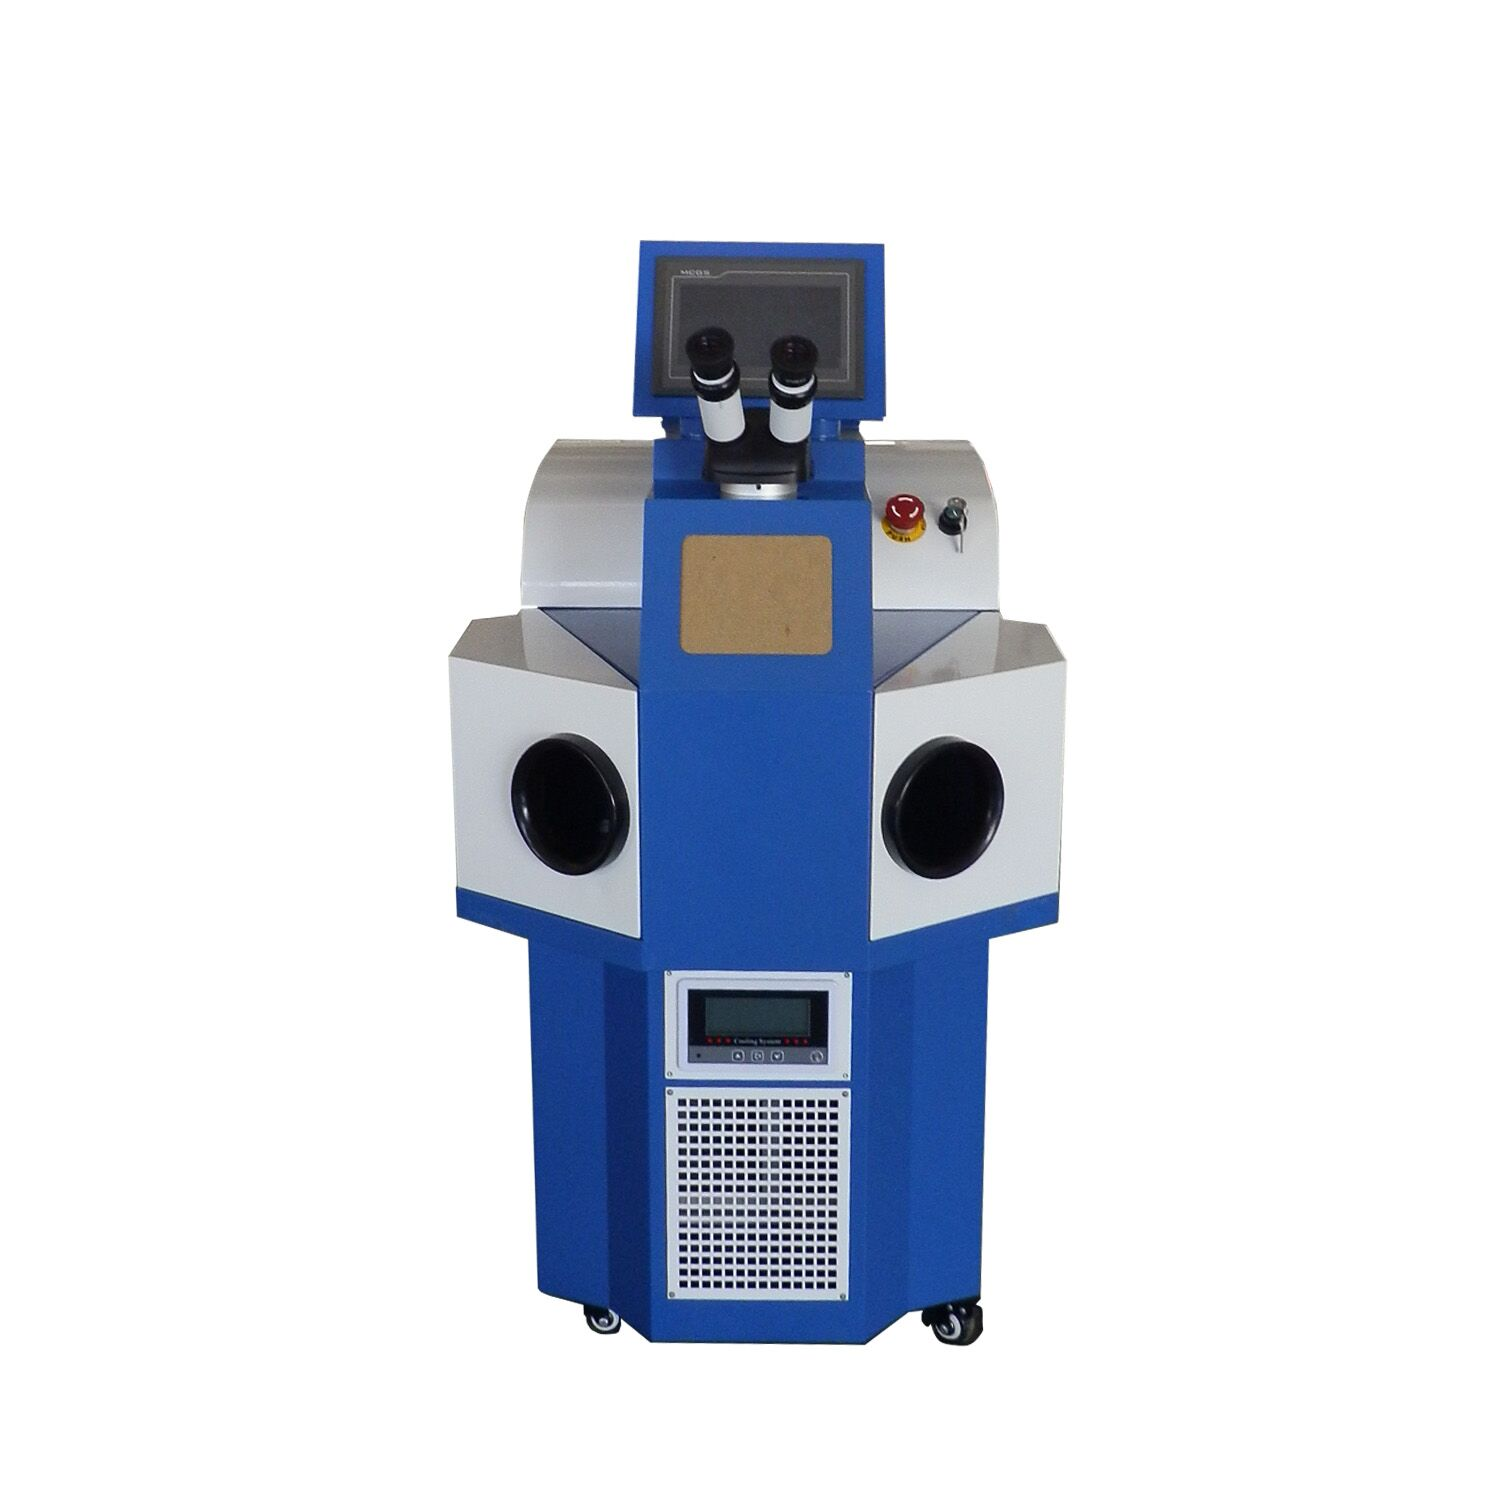 2.Jewelry Laser Welding Machine